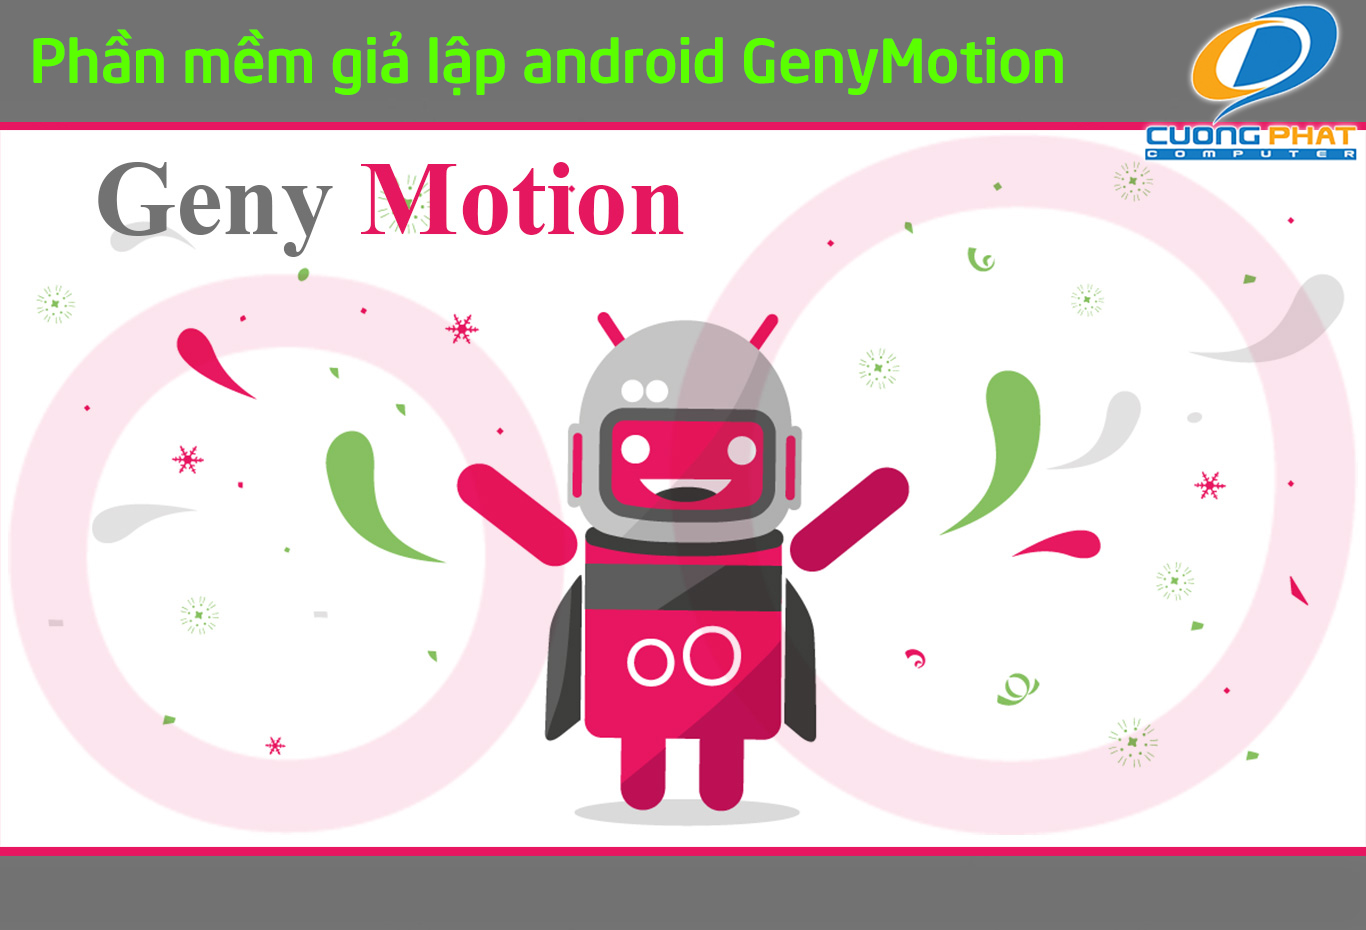 phần mềm giả lập android GenyMotion